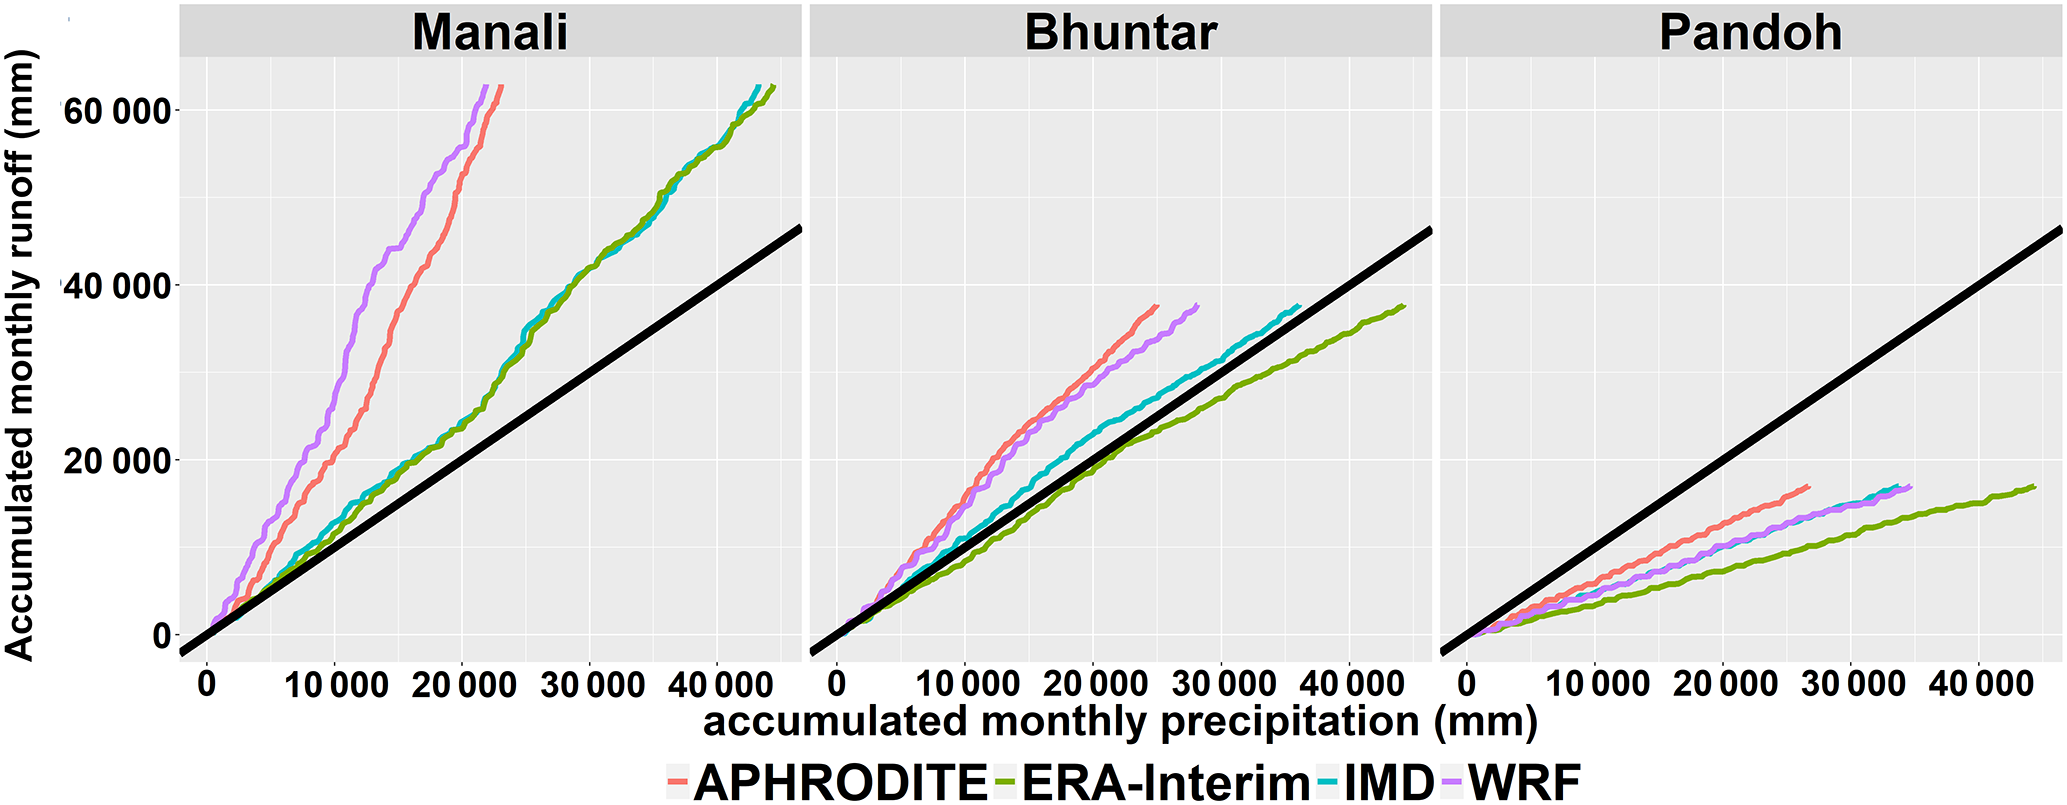 HESS - Precipitation pattern in the Western Himalayas